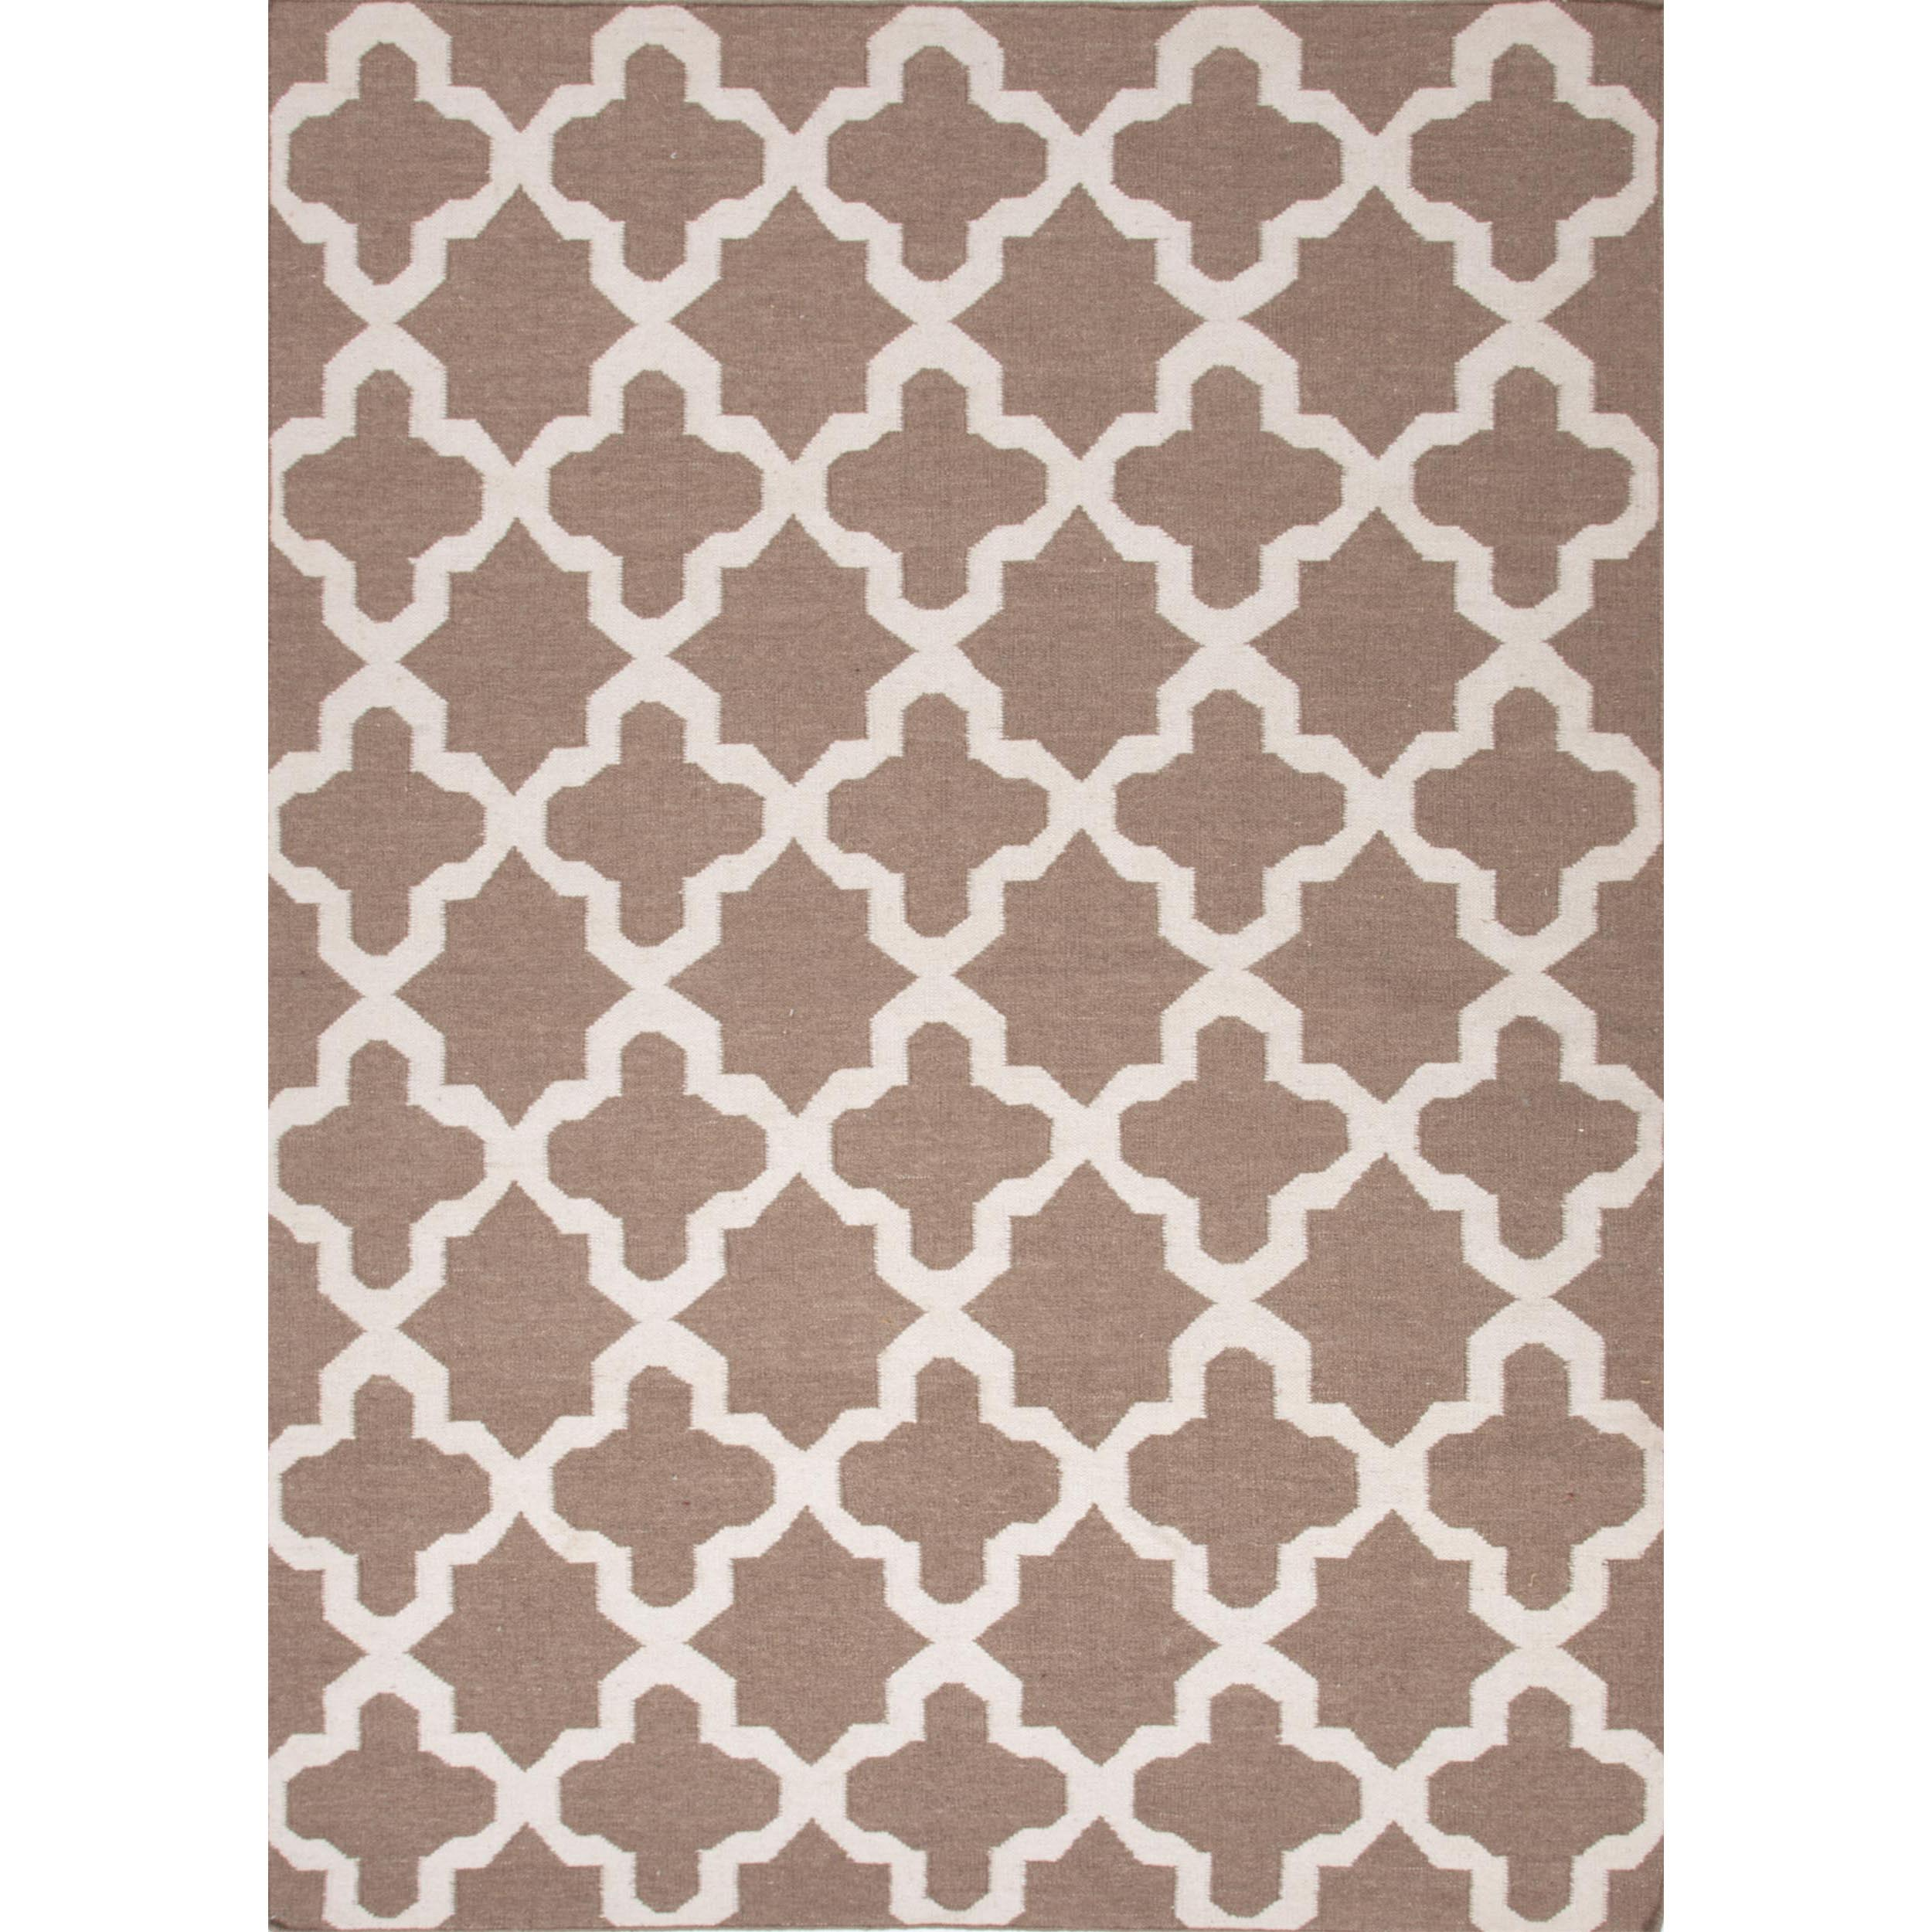 Rectangular Handmade Flat Weave Geometric Beige/ Brown Wool Rug (9' x 12')